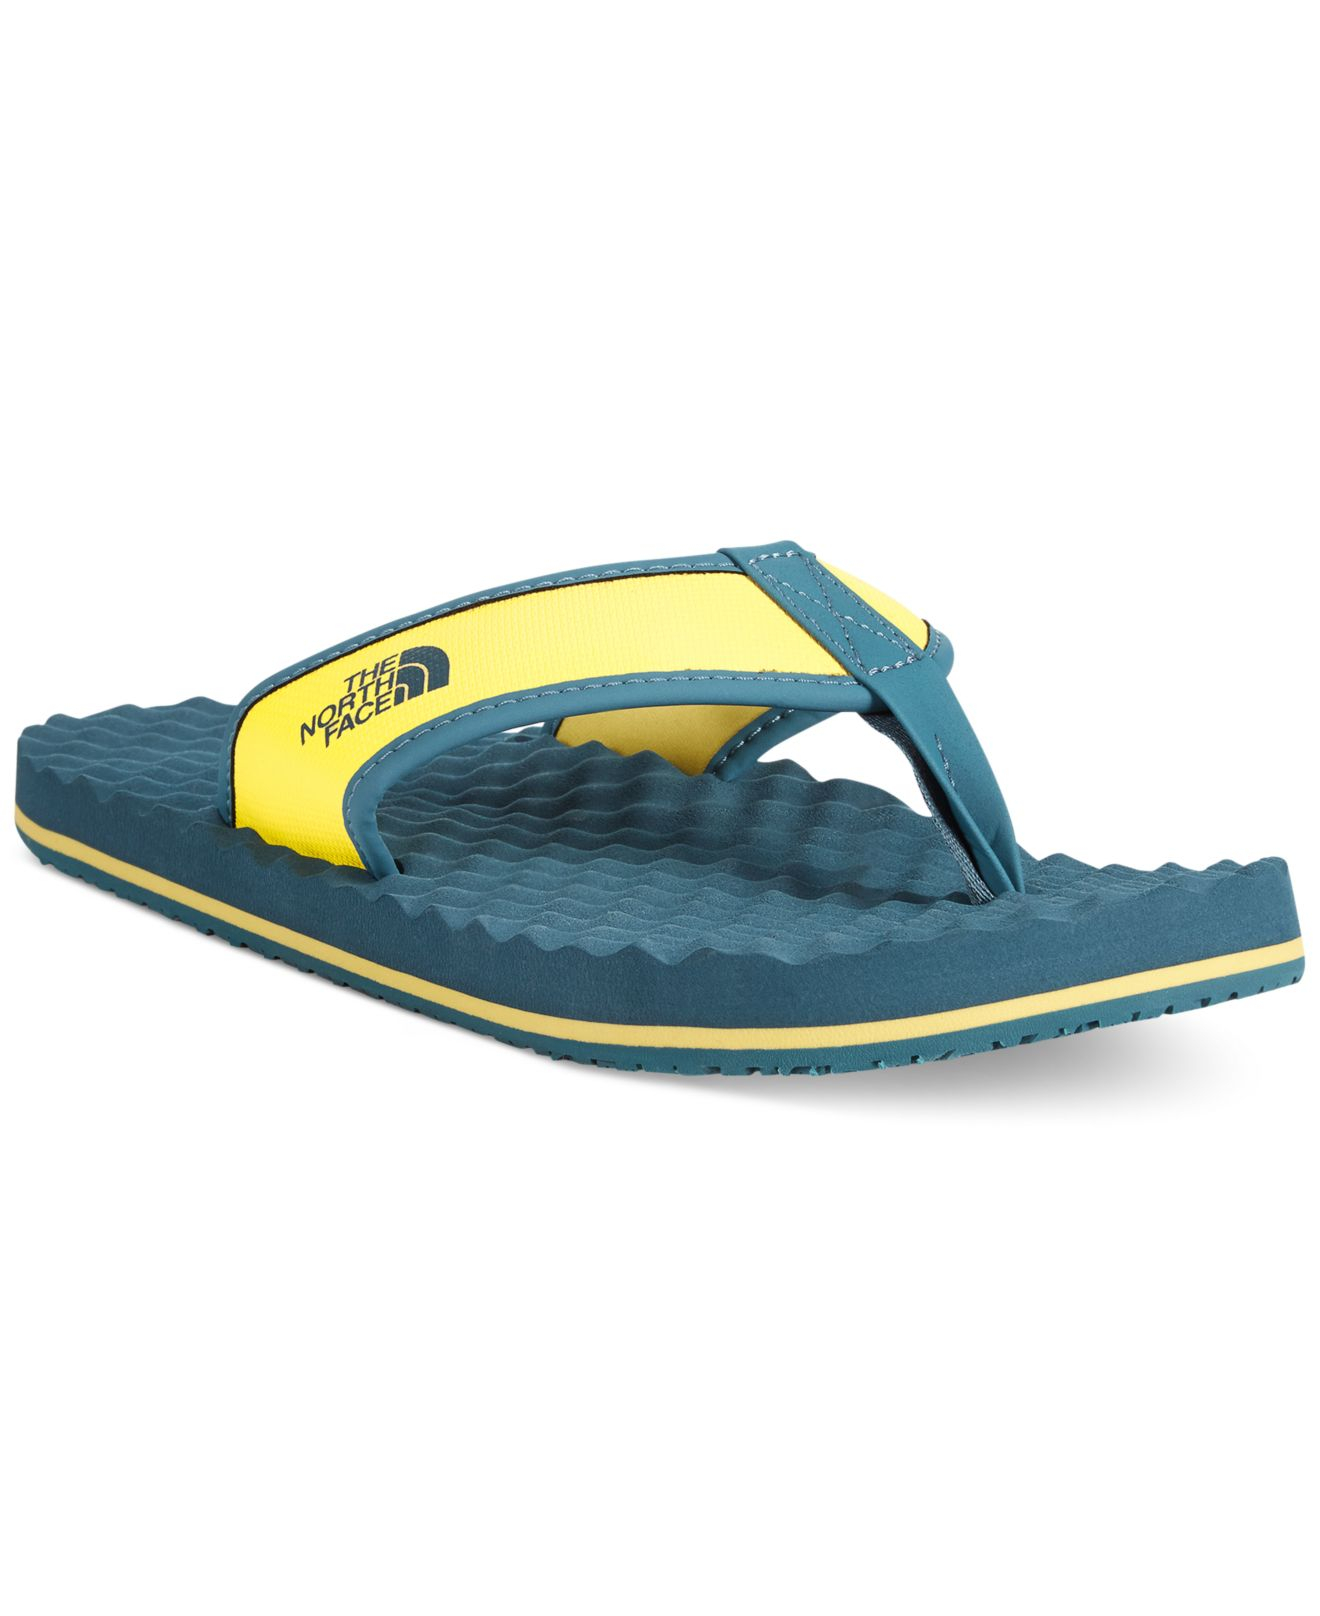 Lyst The North Face Base Camp Flip Flop Sandals In